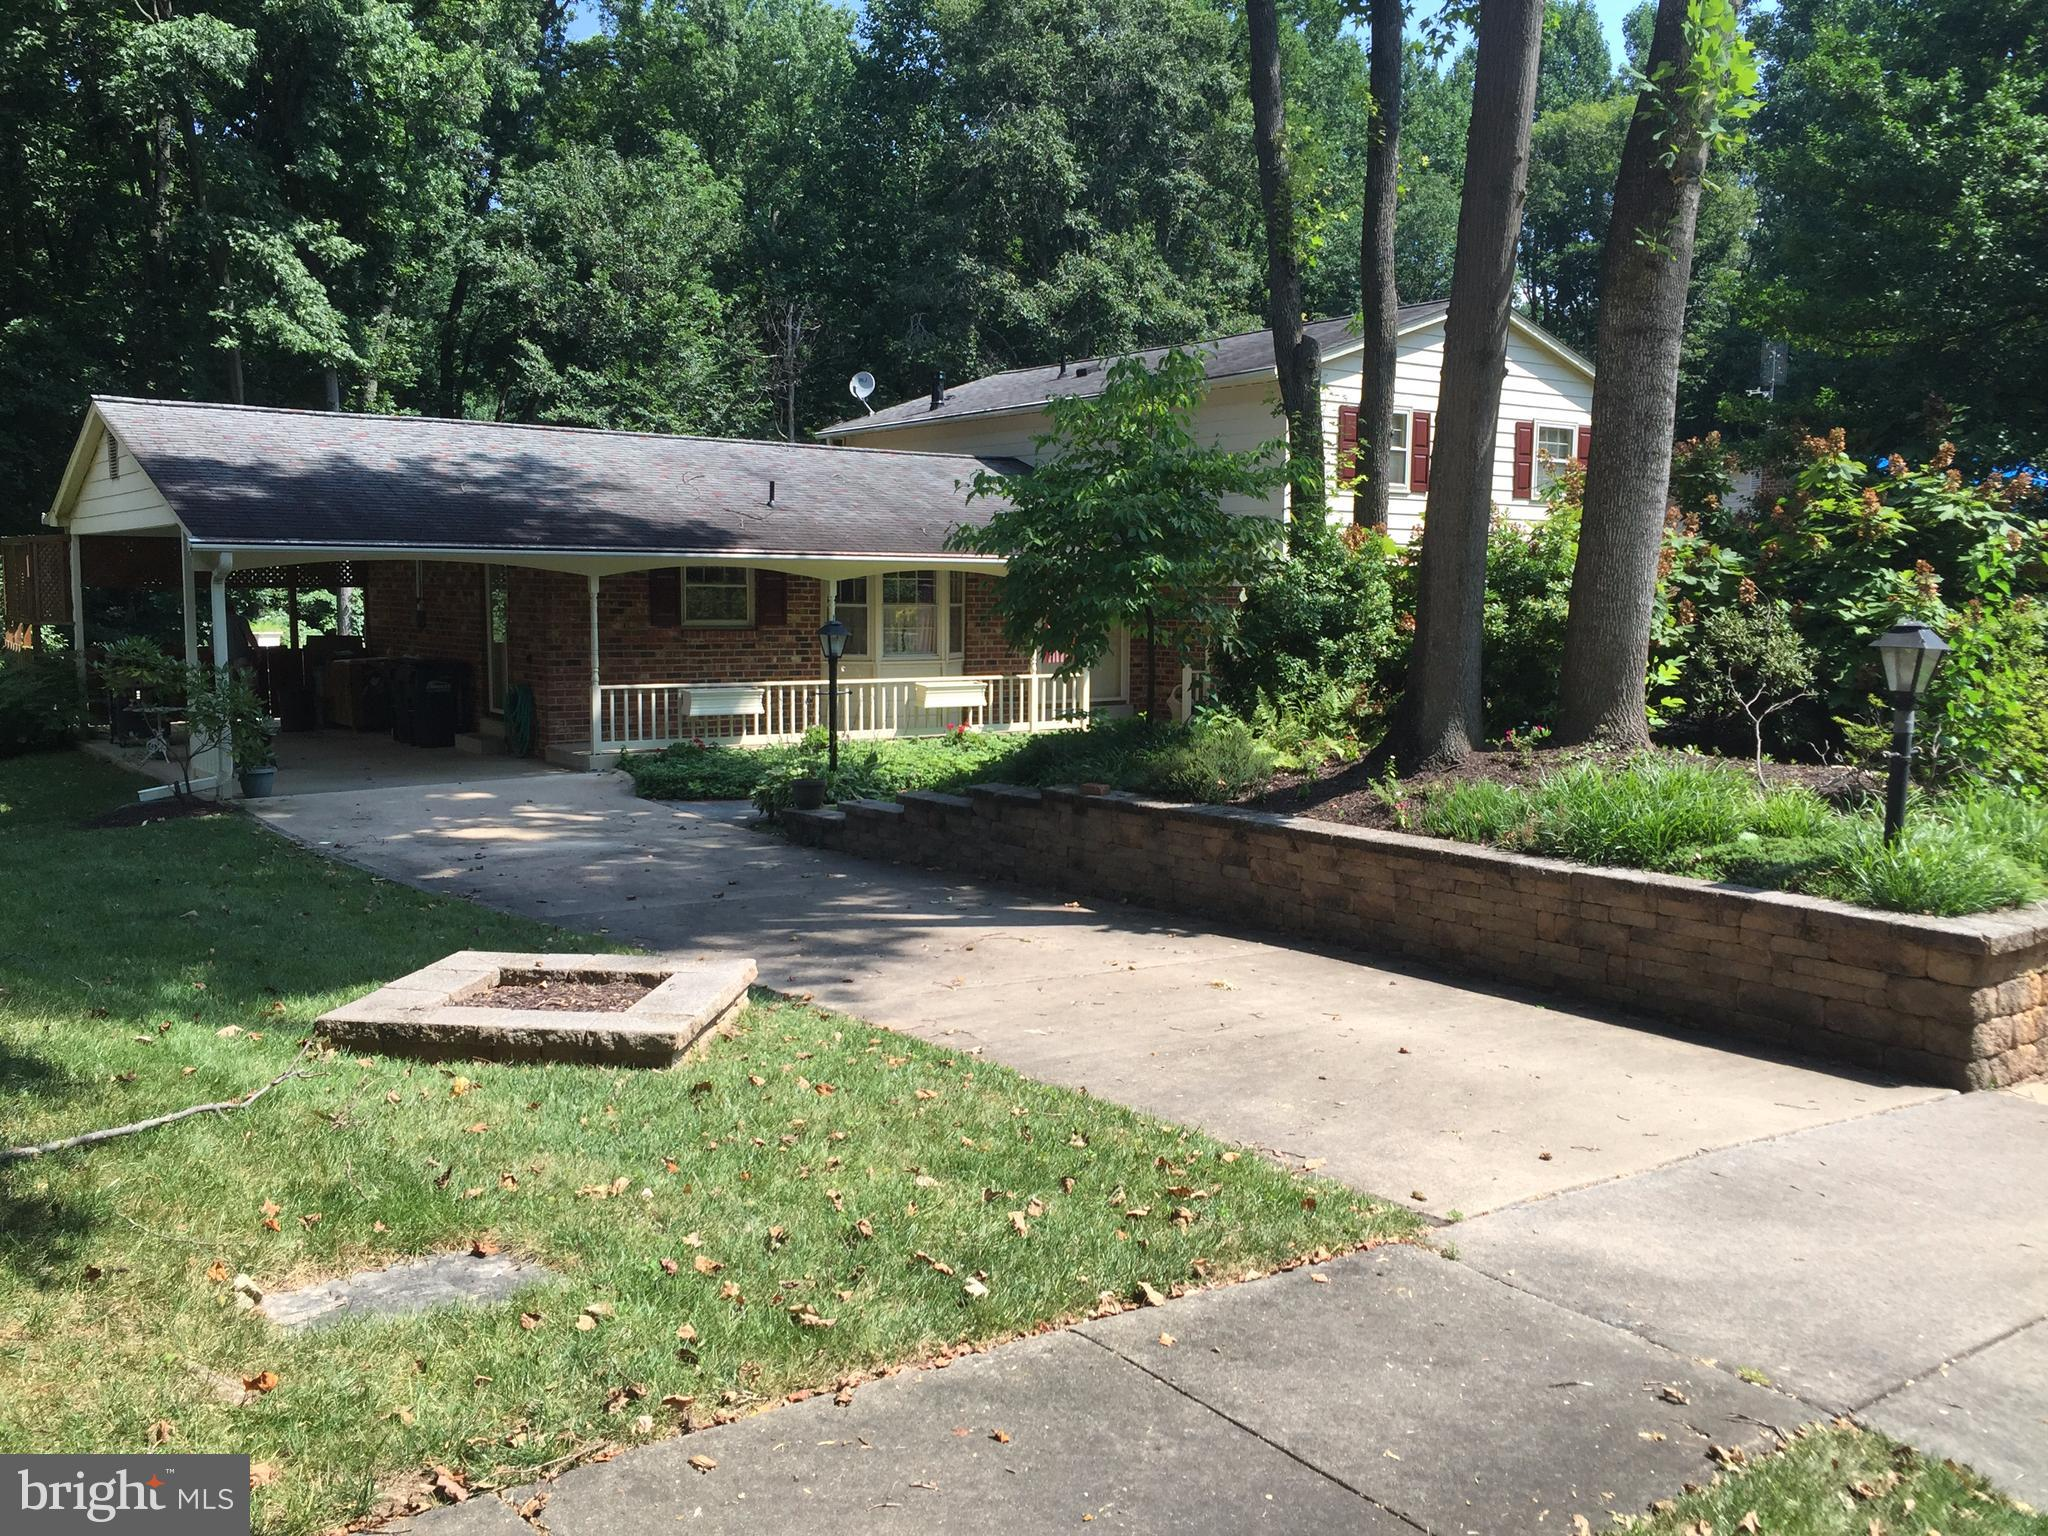 Spacious split level in Orange Hunt. Walk through the woods to Orange Hunt Pool and Tennis Club. Great backyard, perfect for the kids. All bathrooms have been remodeled. Owner installing brand new kitchen appliances. Freshly painted and carpets cleaned. Ready for you!